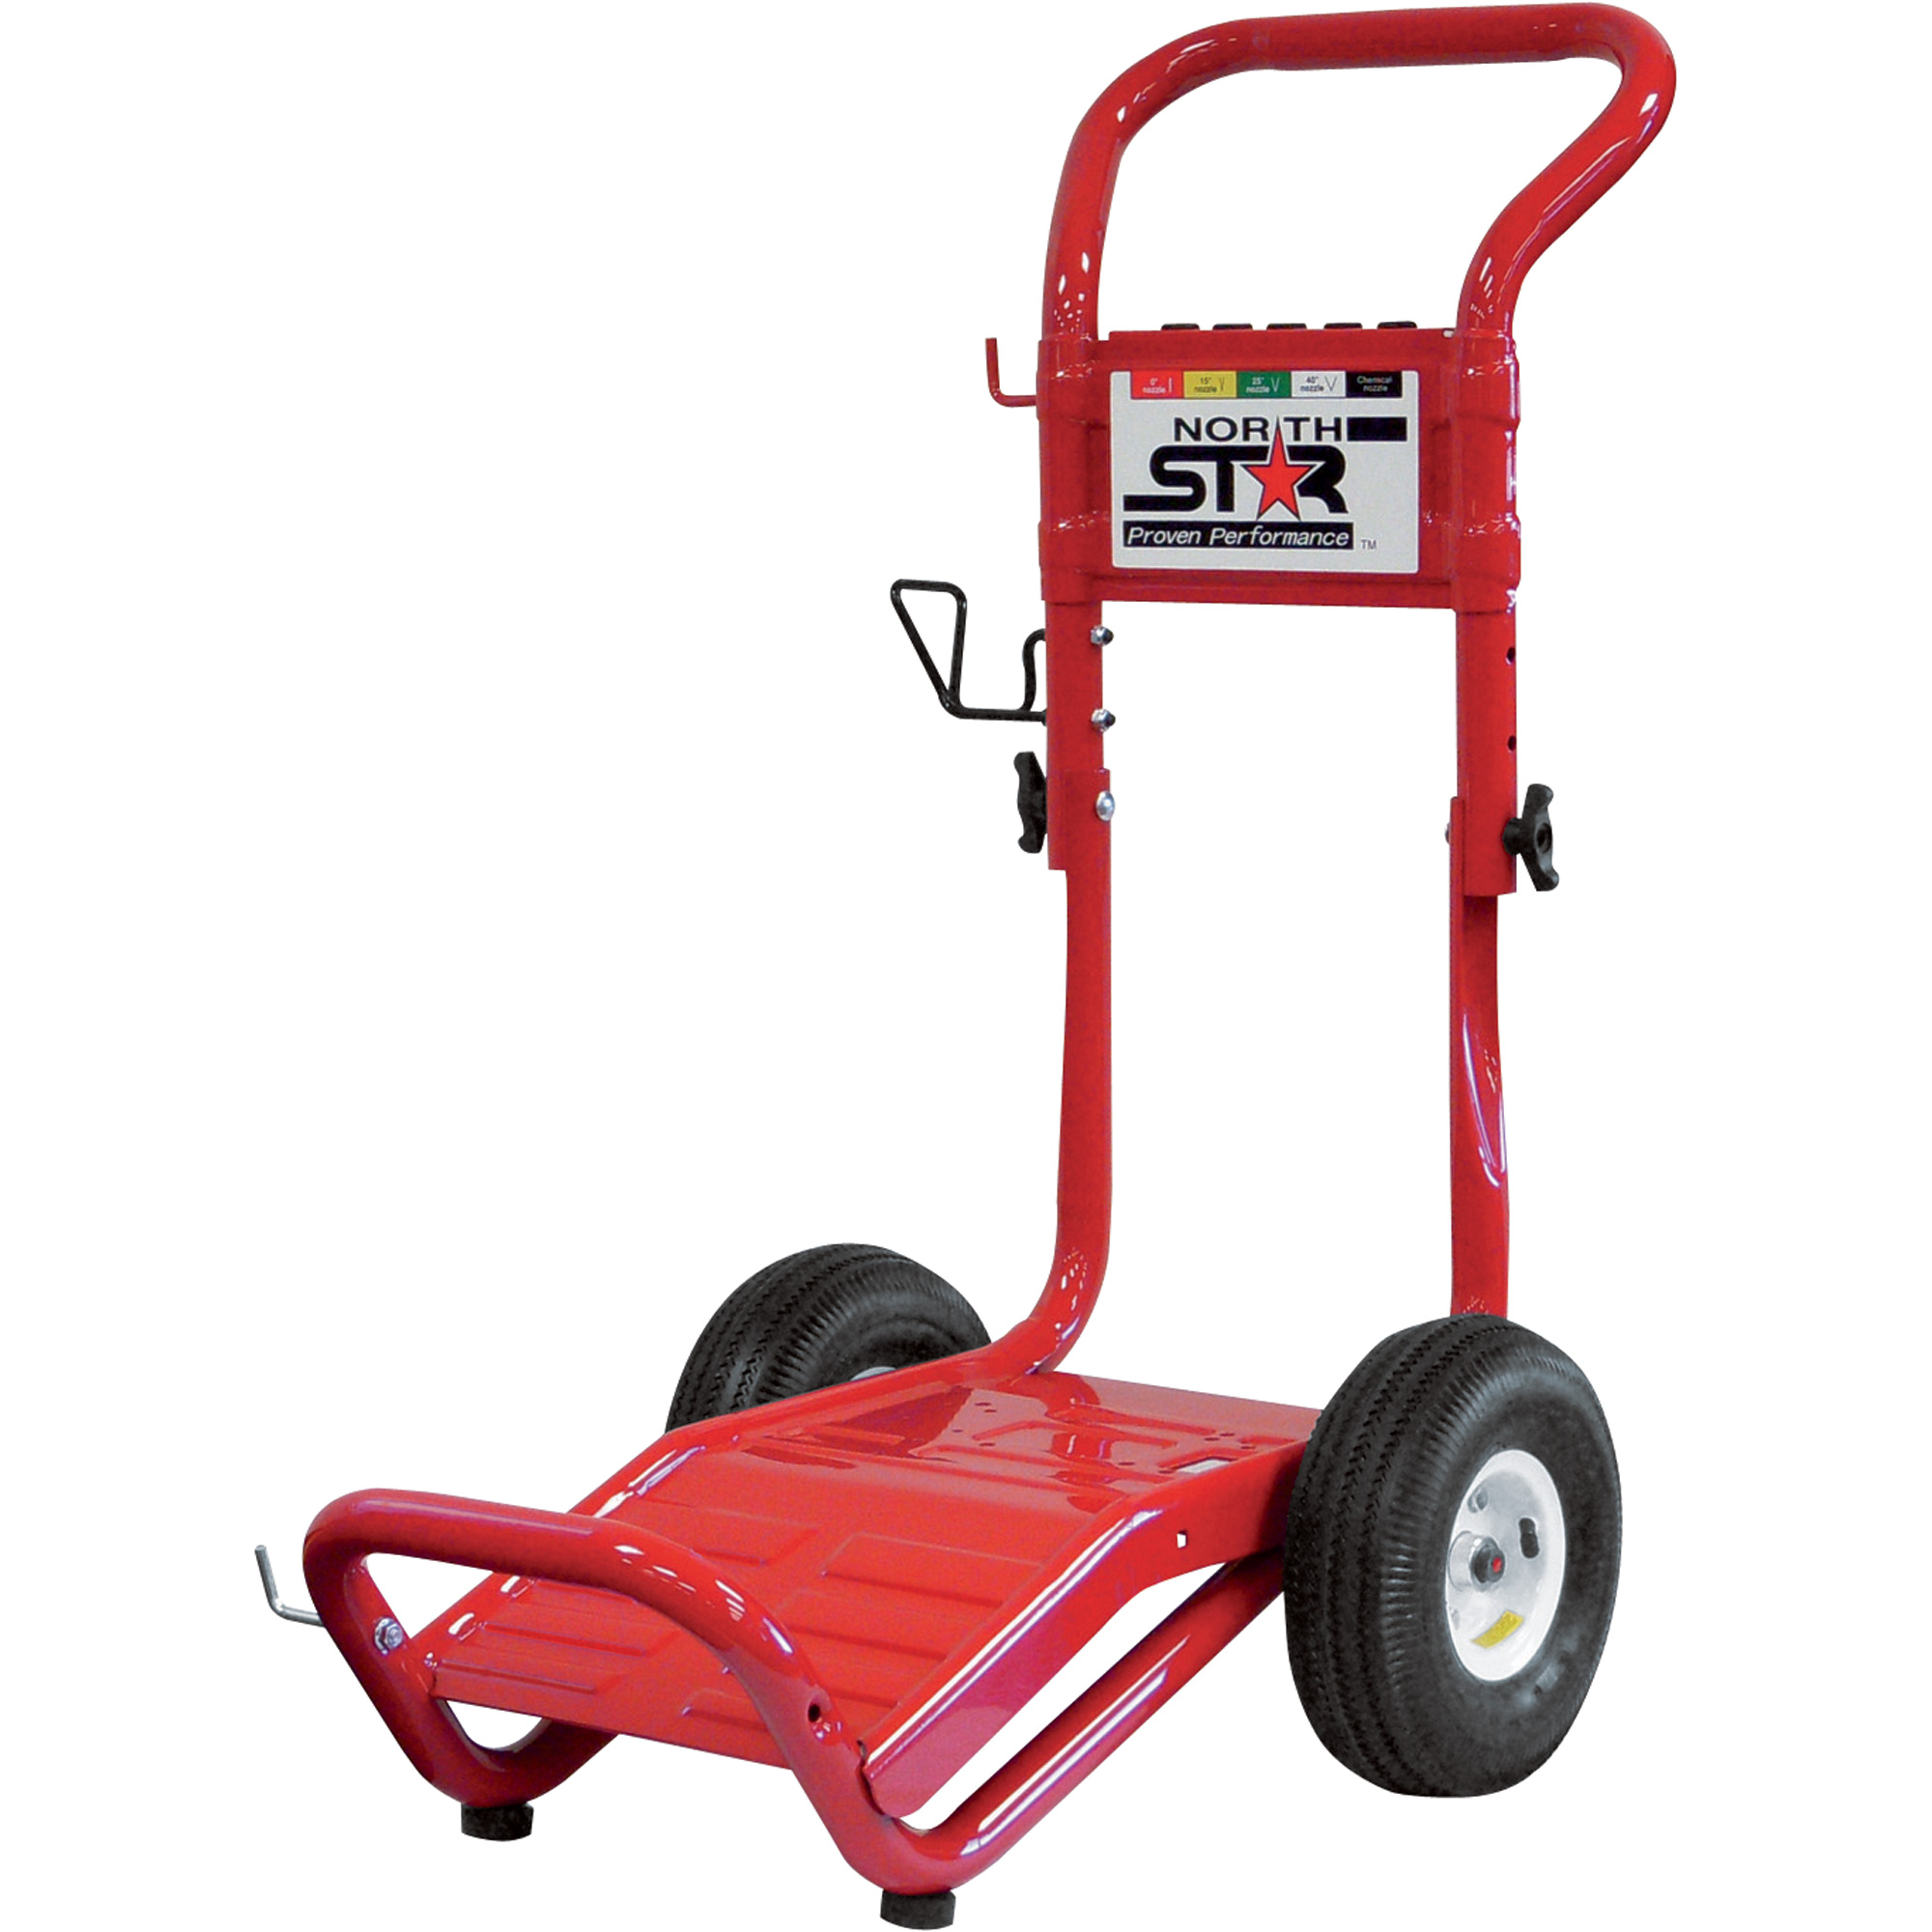 Washer Reviews Northstar Pressure Washer Reviews